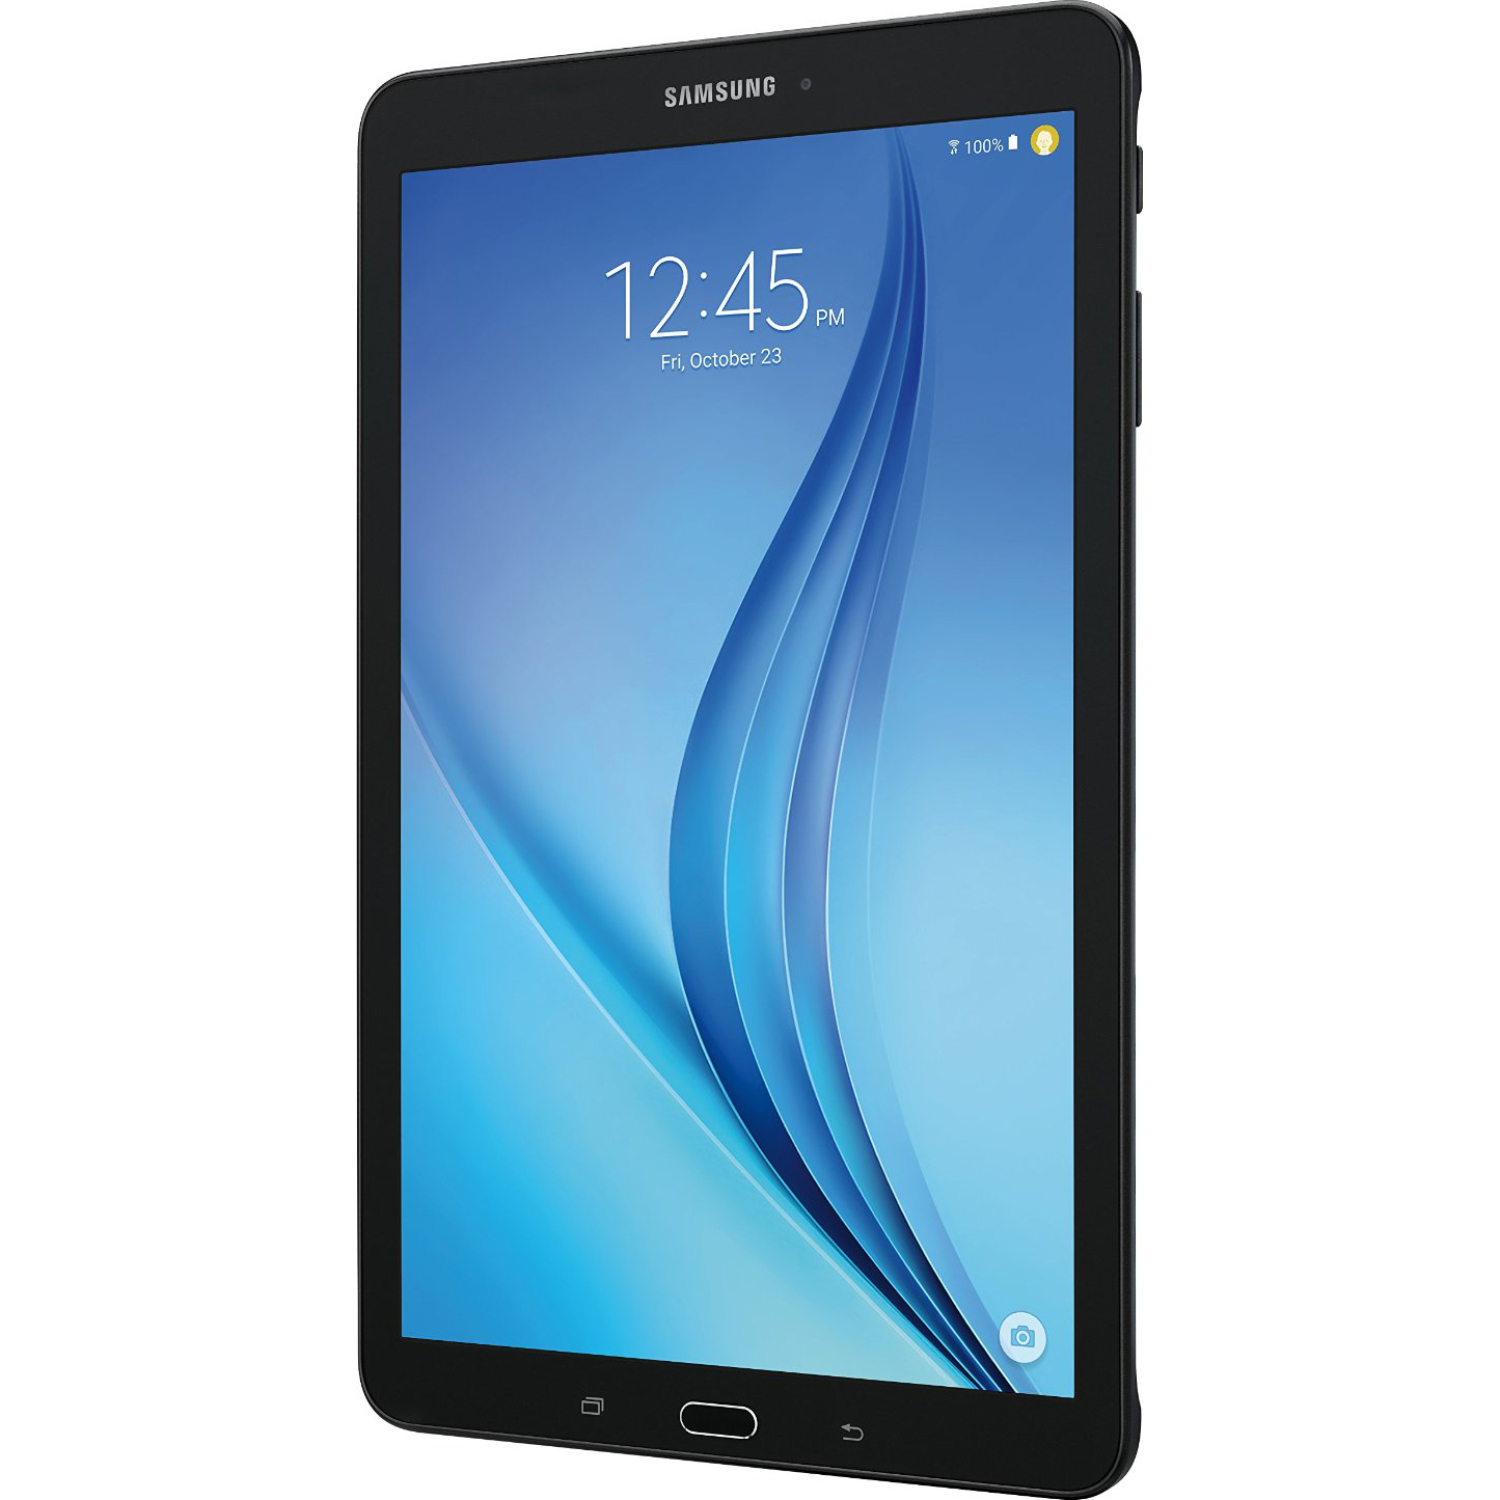 Samsung Galaxy Tab E 9.6: New Android Tablet for Beginners